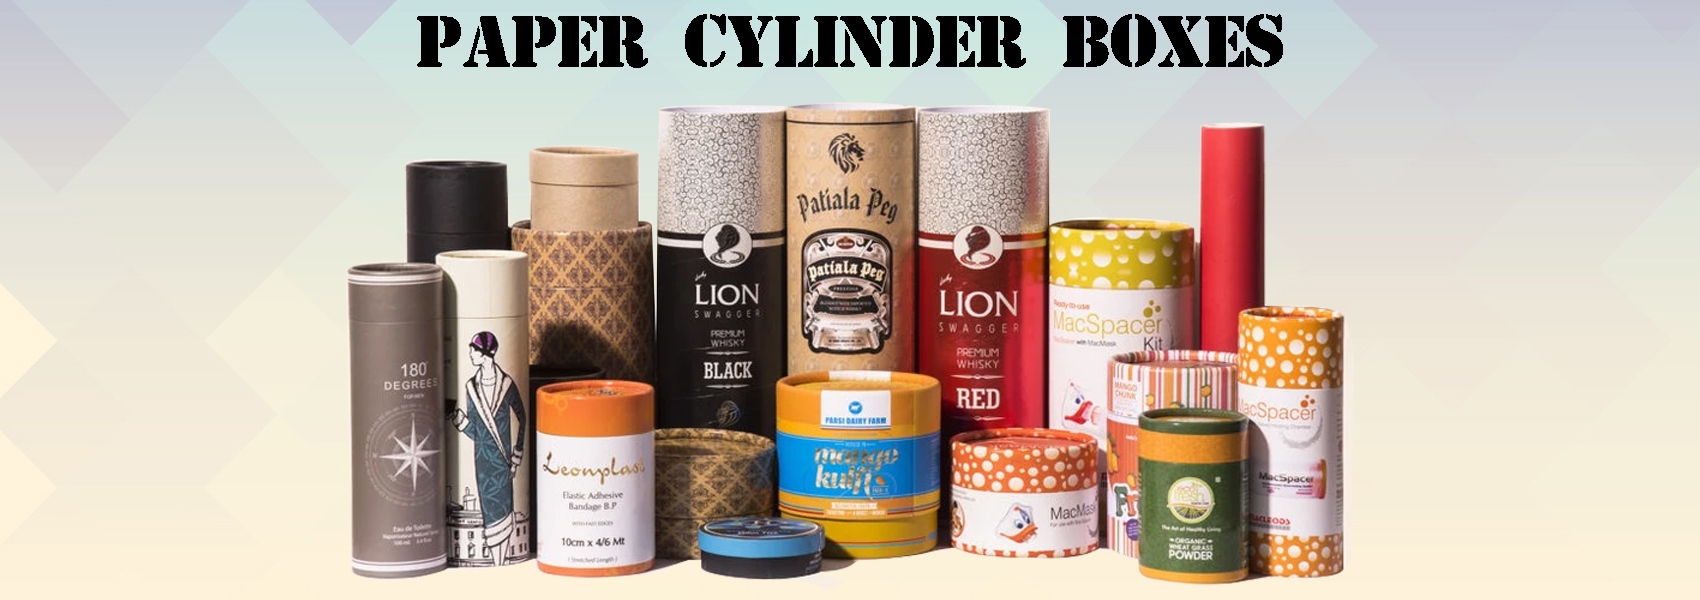 Paper Cylinder Boxes, Paper Rounder Boxes, Paper Tube Boxes